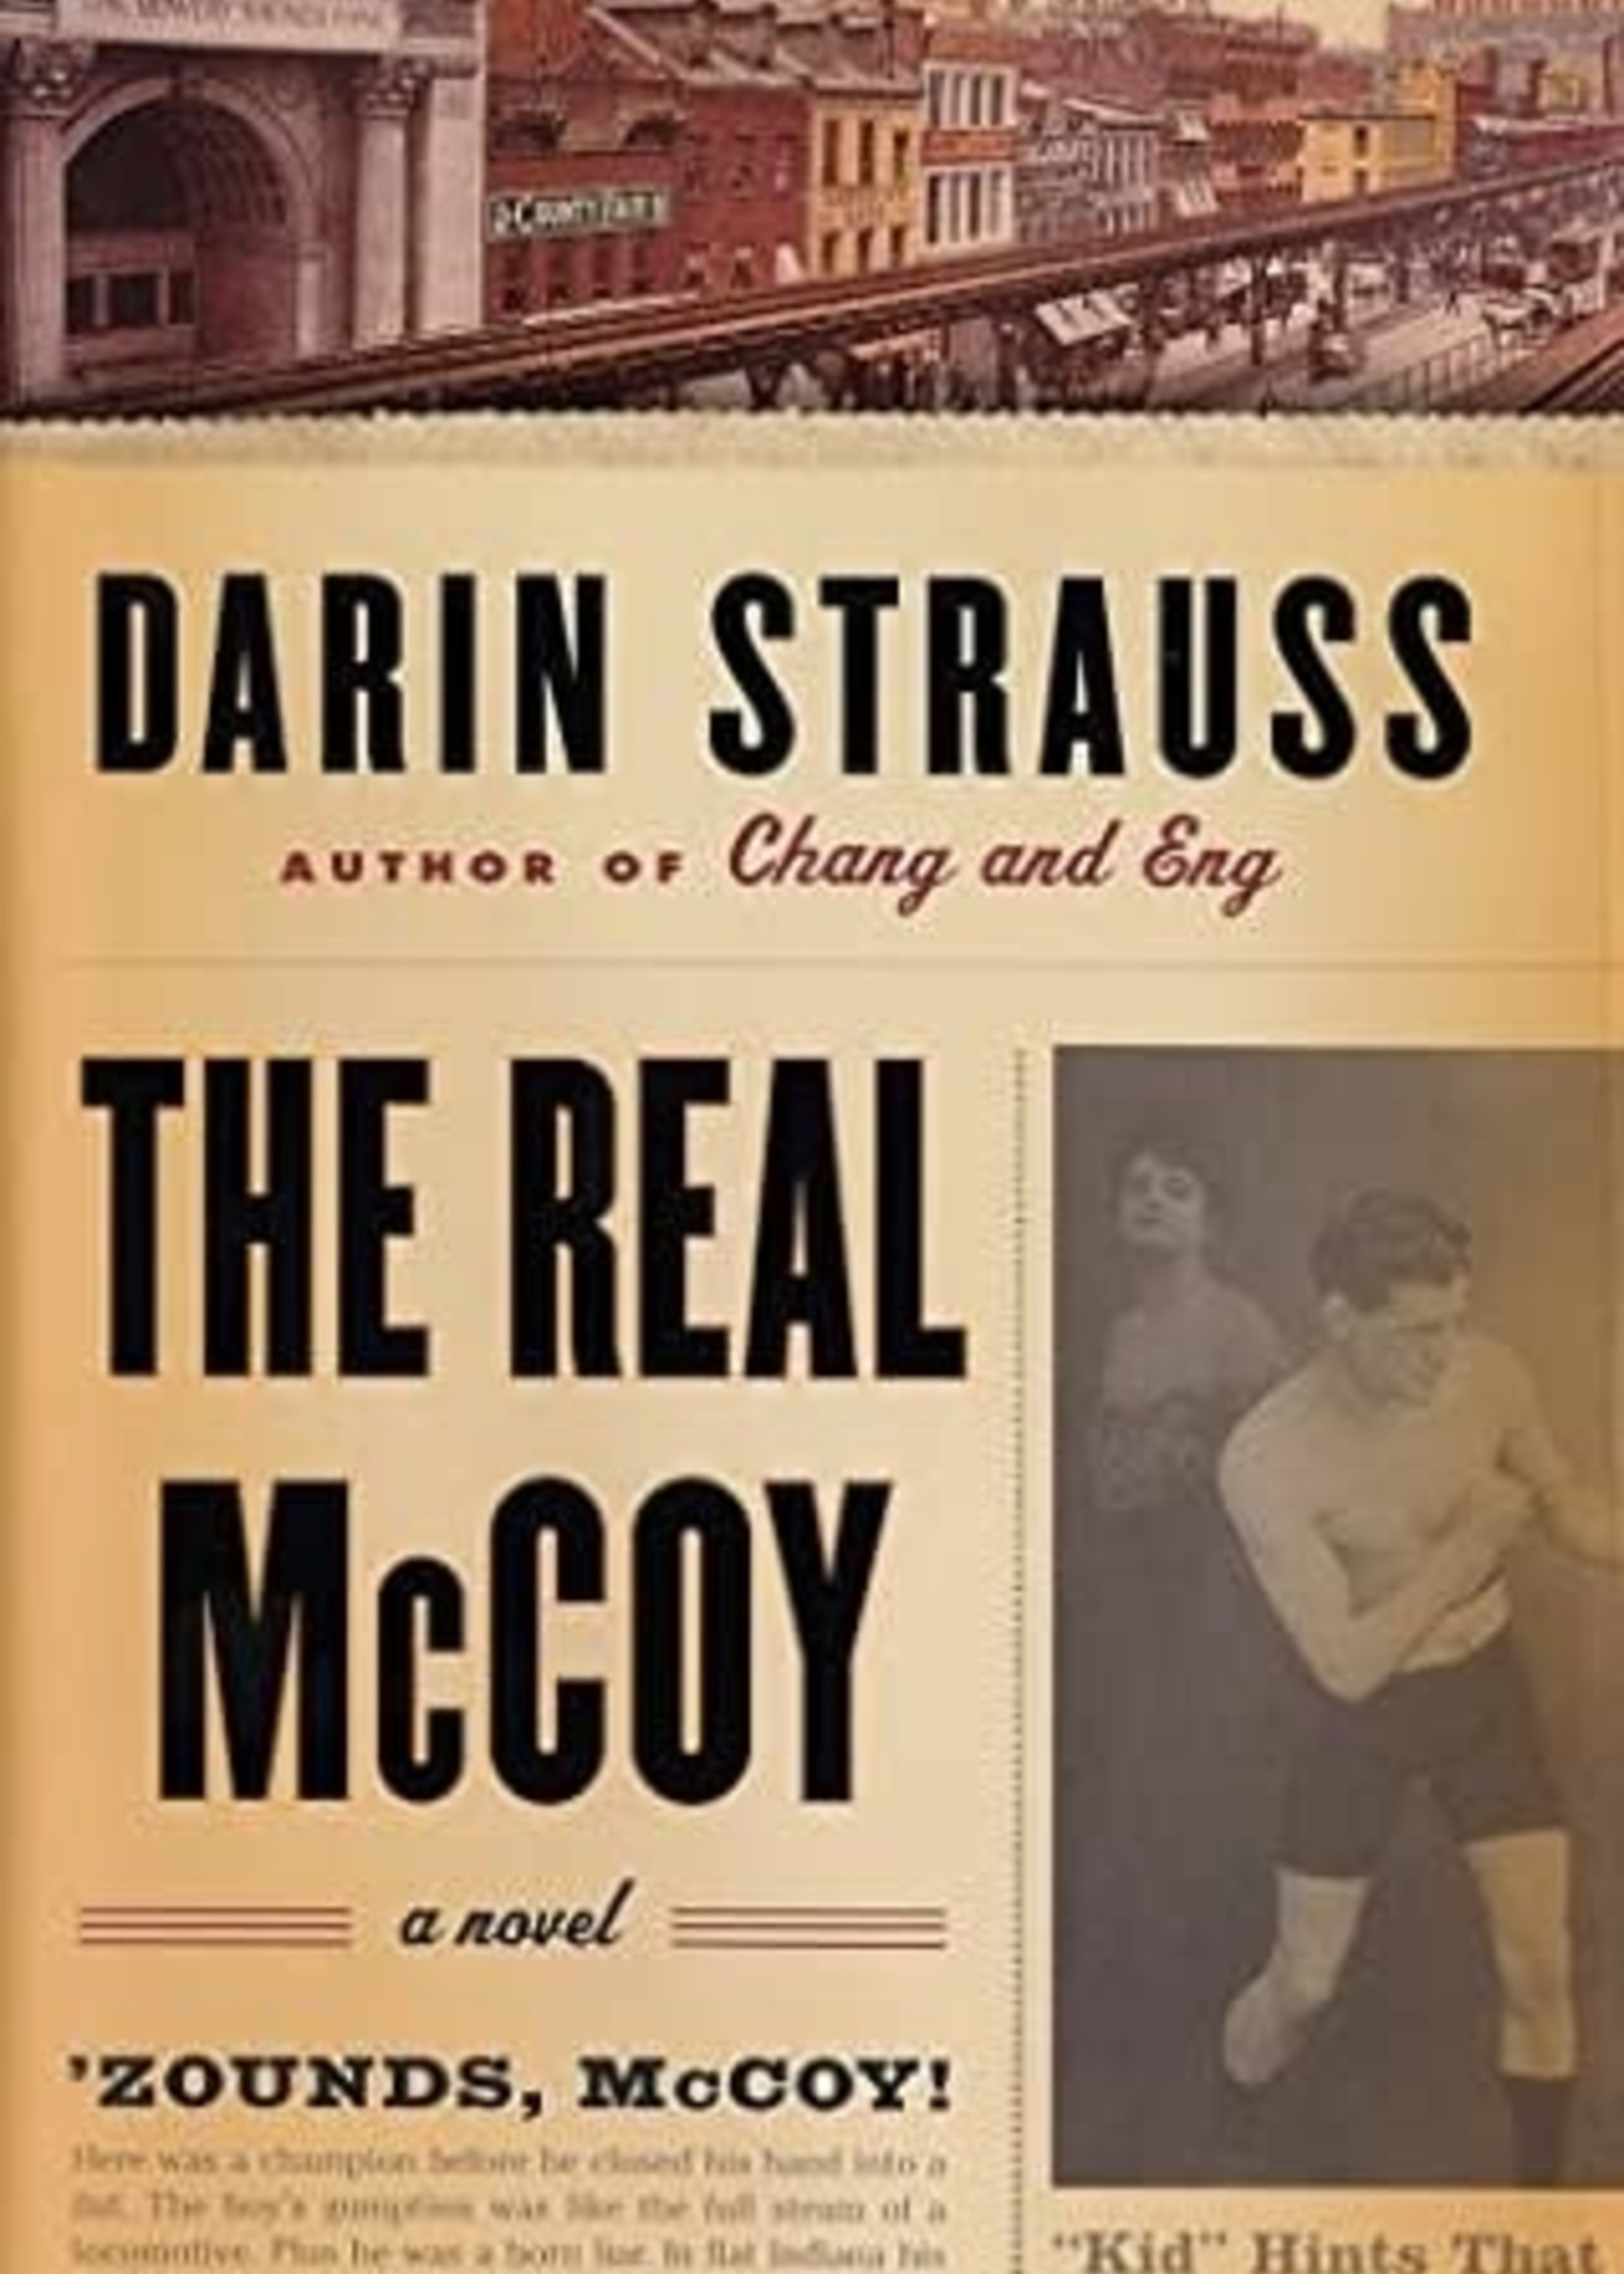 USED - The Real McCoy by Darin Strauss